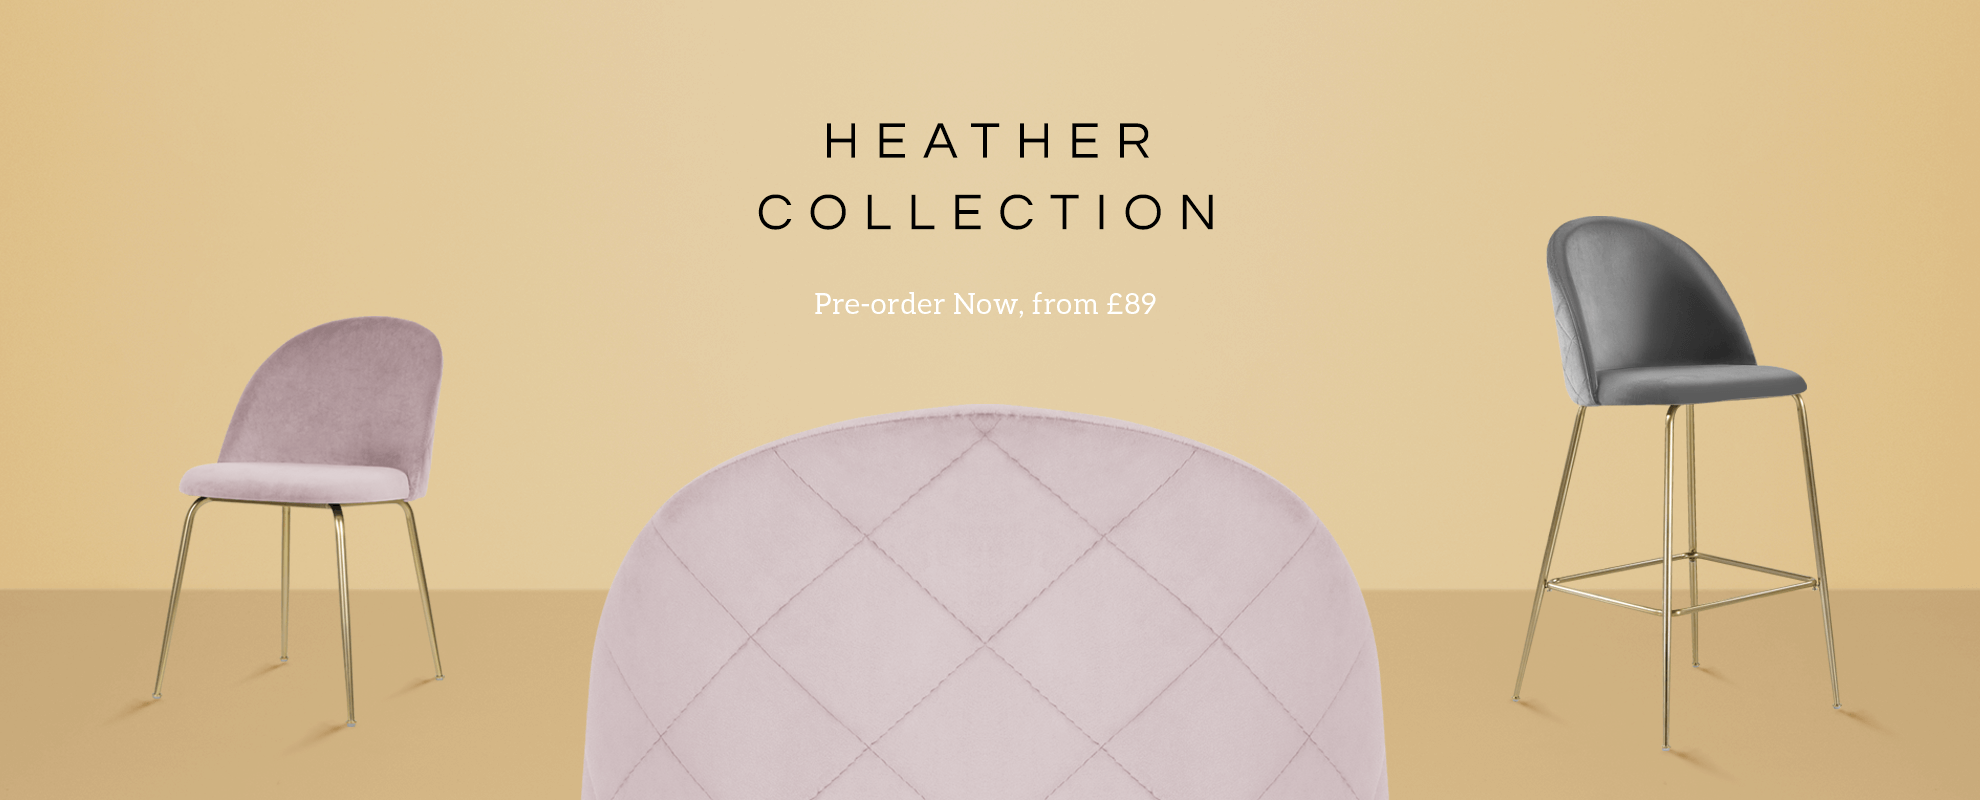 Heather Chairs